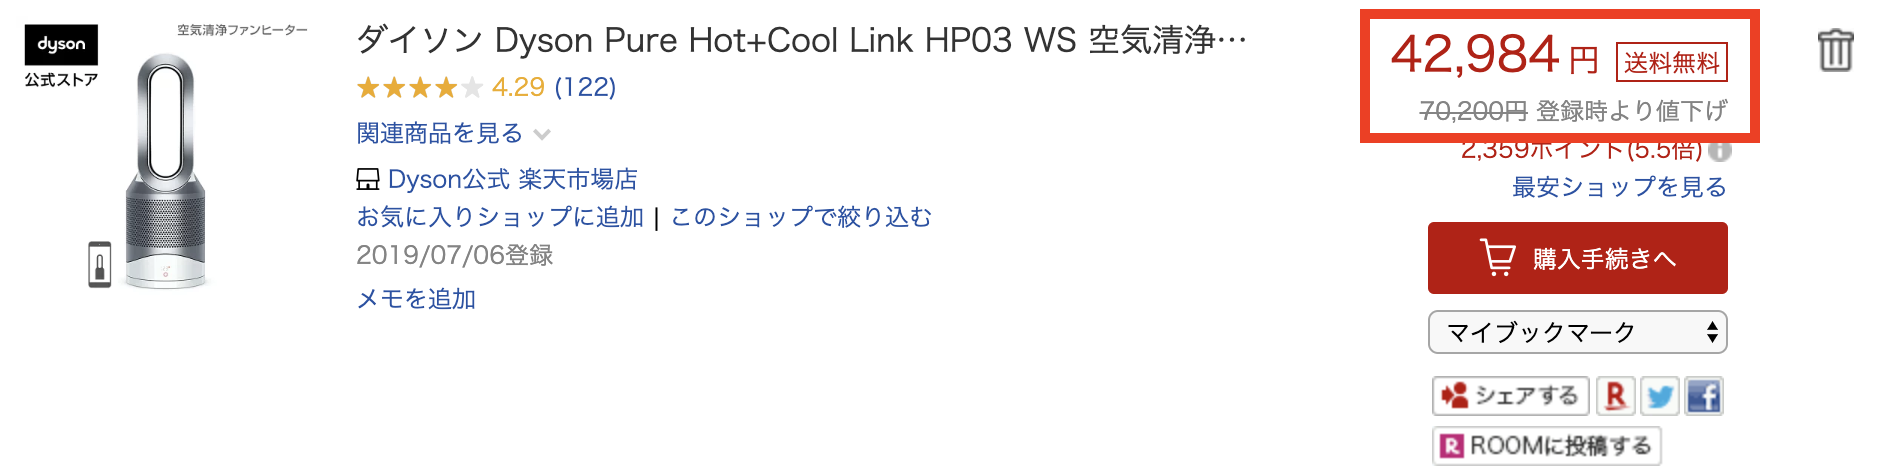 ダイソン Pure Hot+Cool Link